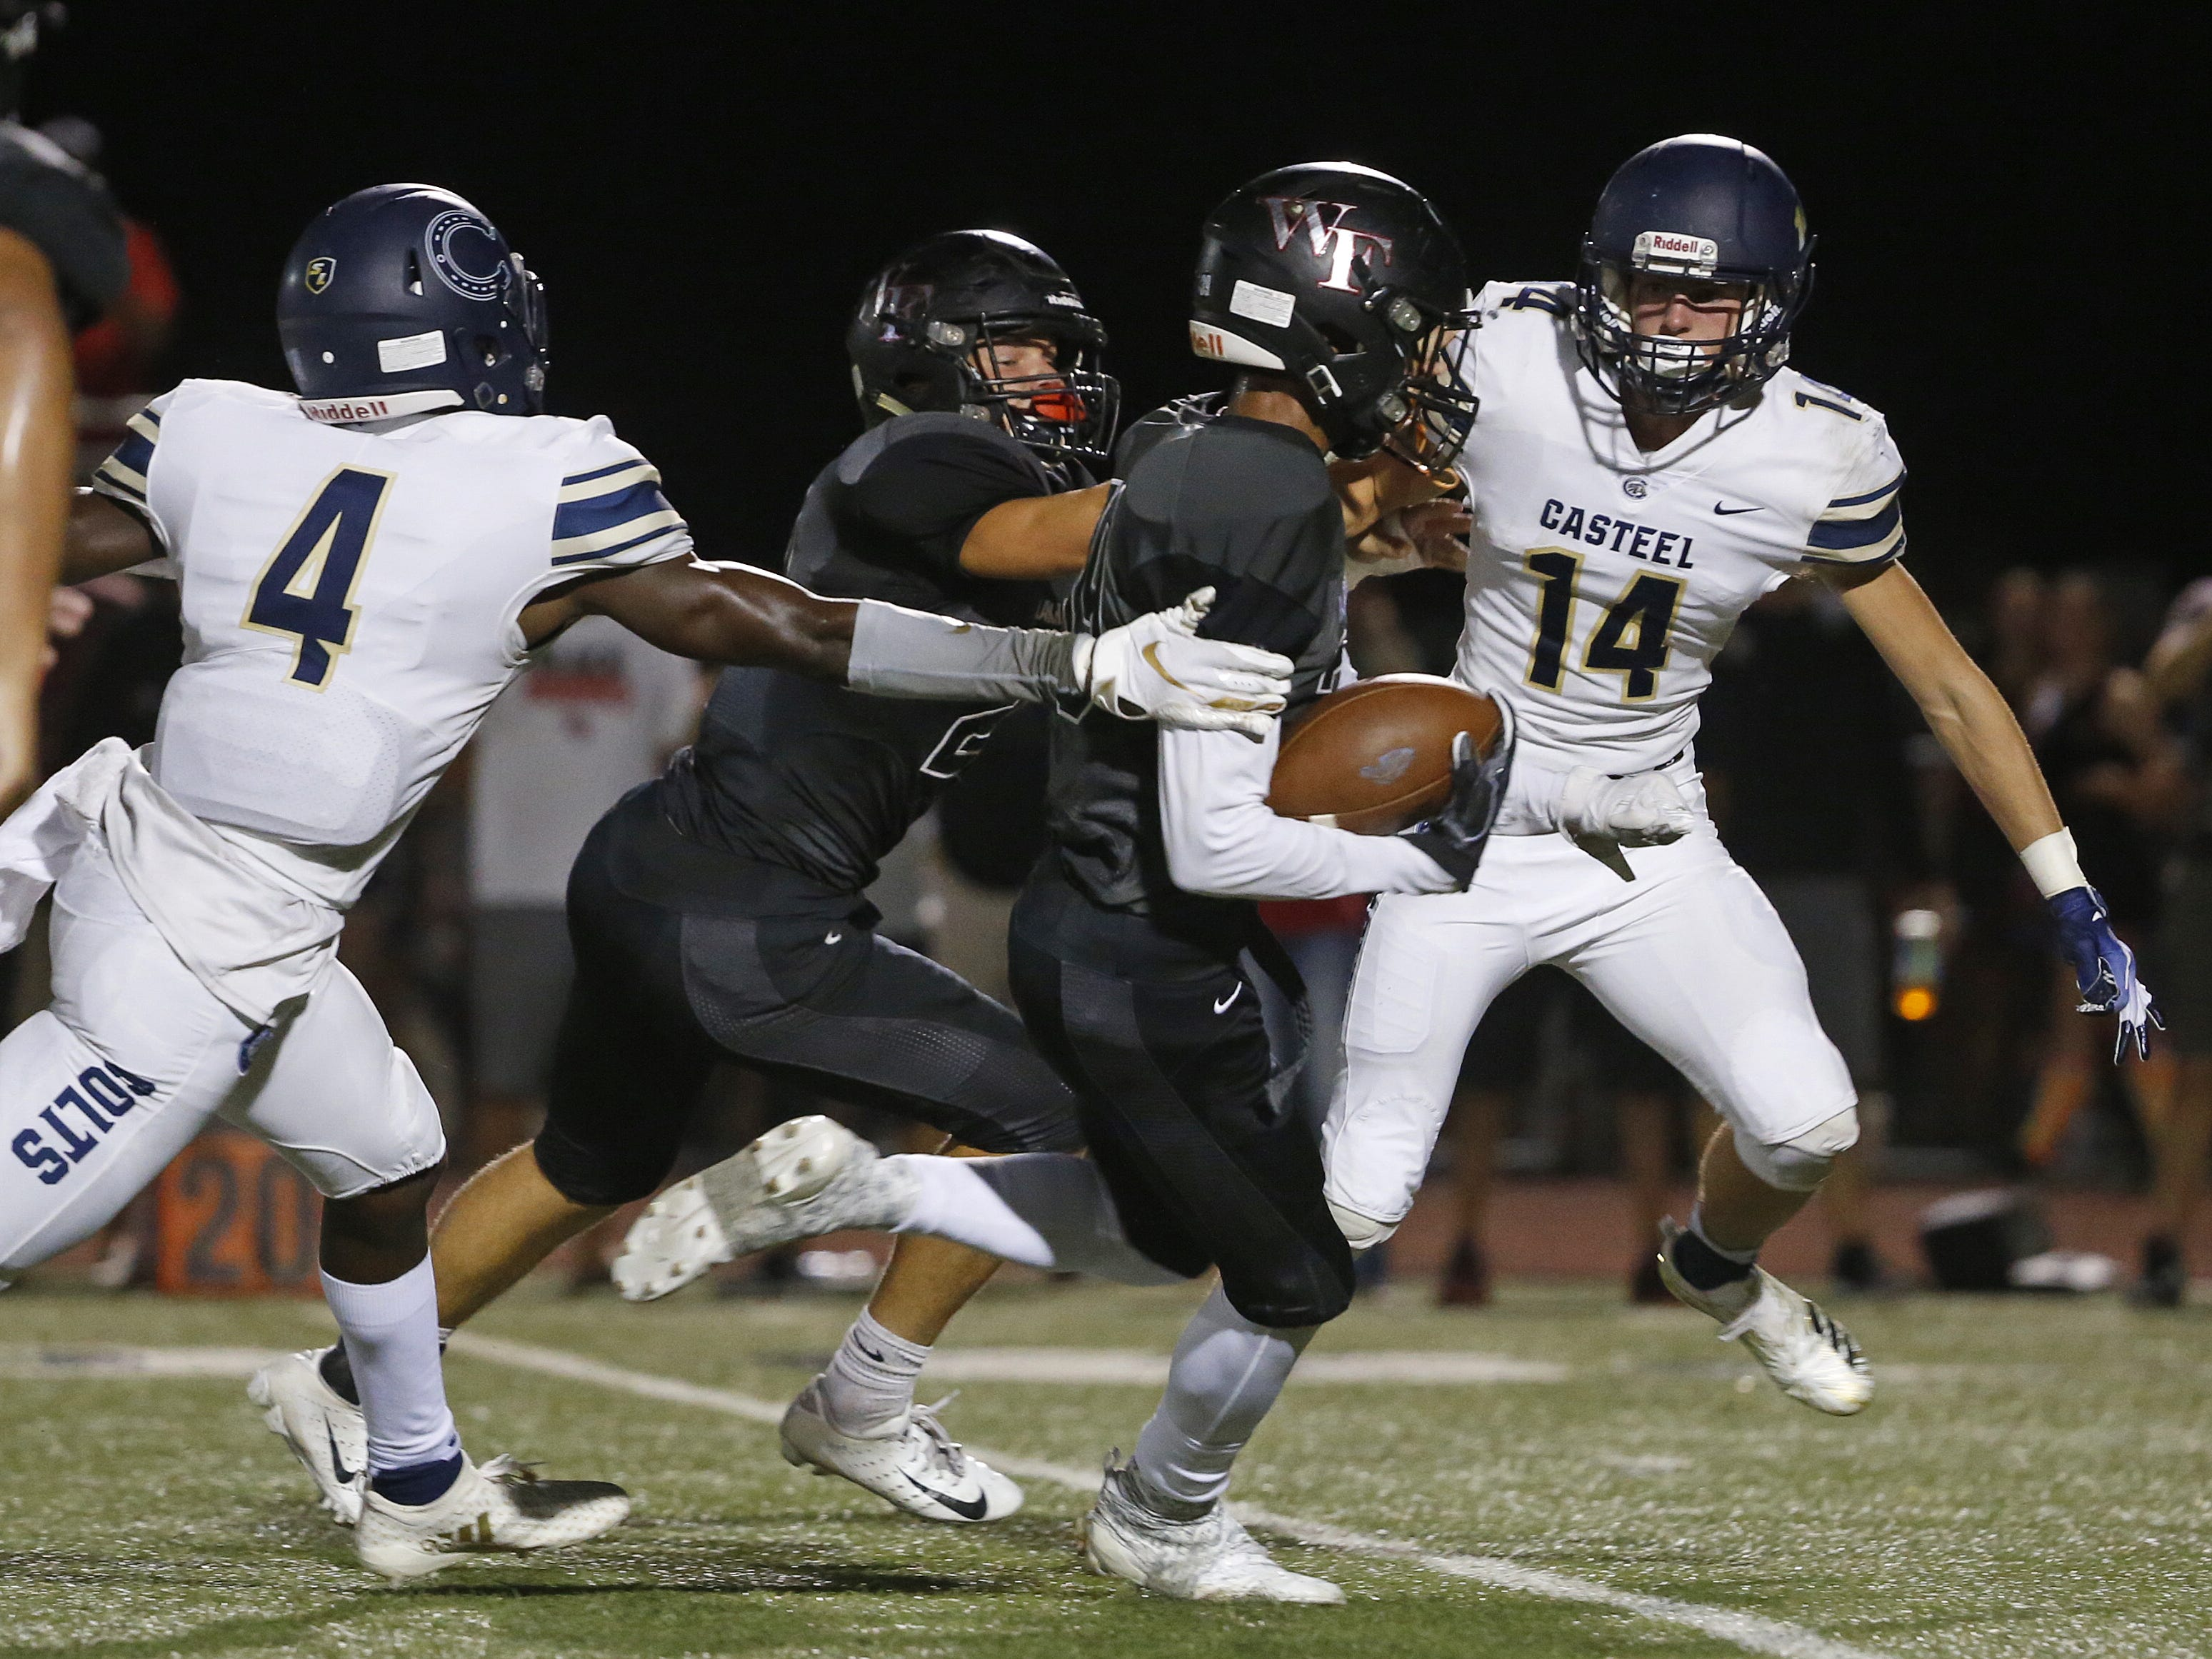 Williams Field's Jadon Pearson (39) returns an interception against Casteel's Gunner Cruz at Williams Field High School in Gilbert, Ariz. on Sept. 21, 2018.  #azhsfb